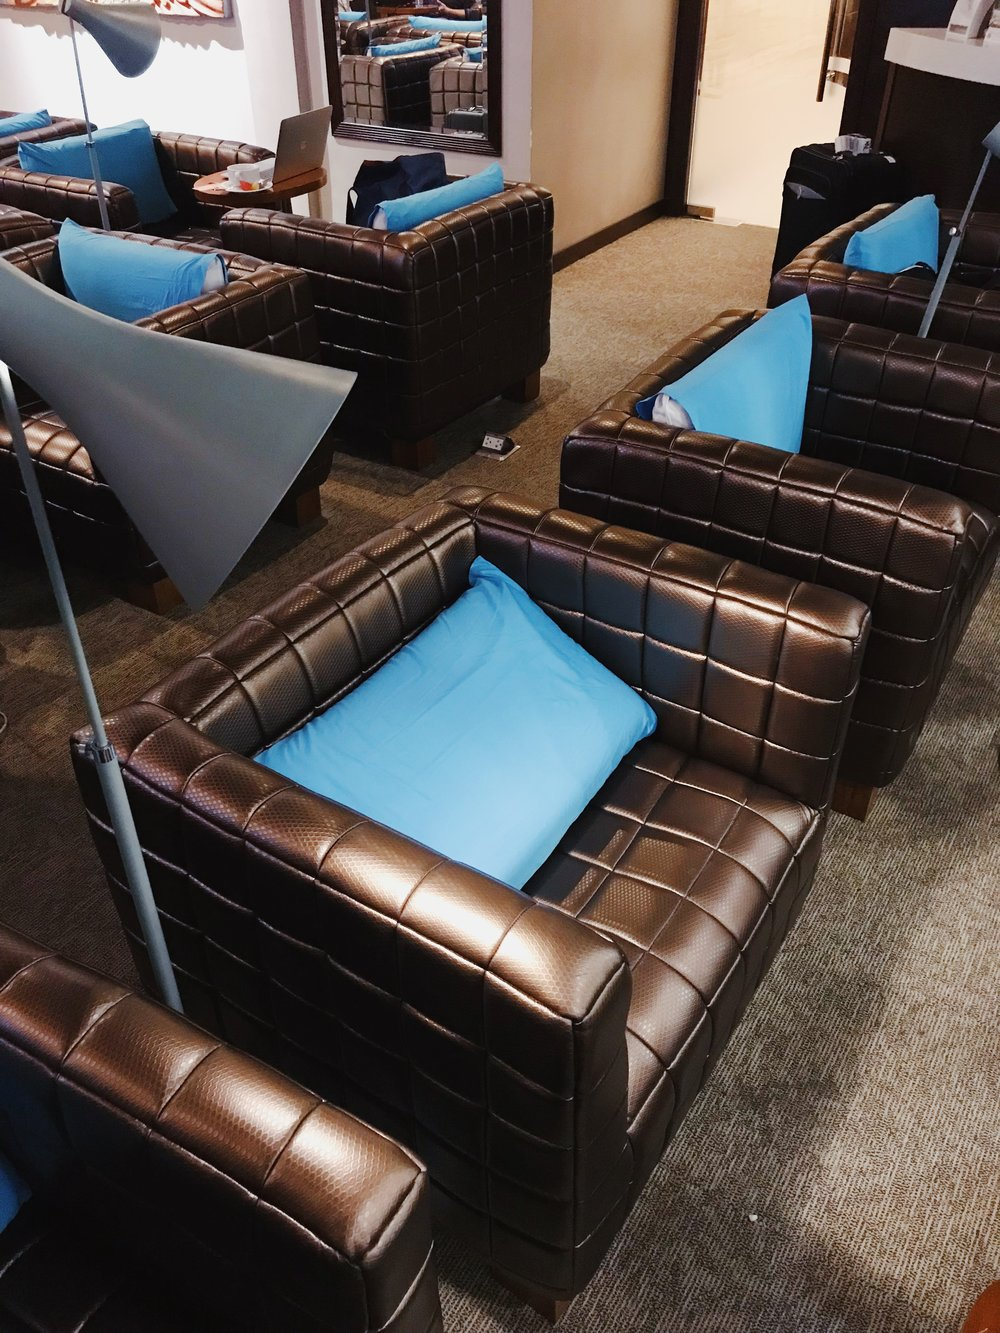 The seats at the Corporate Lounge are spacious and comfortable.